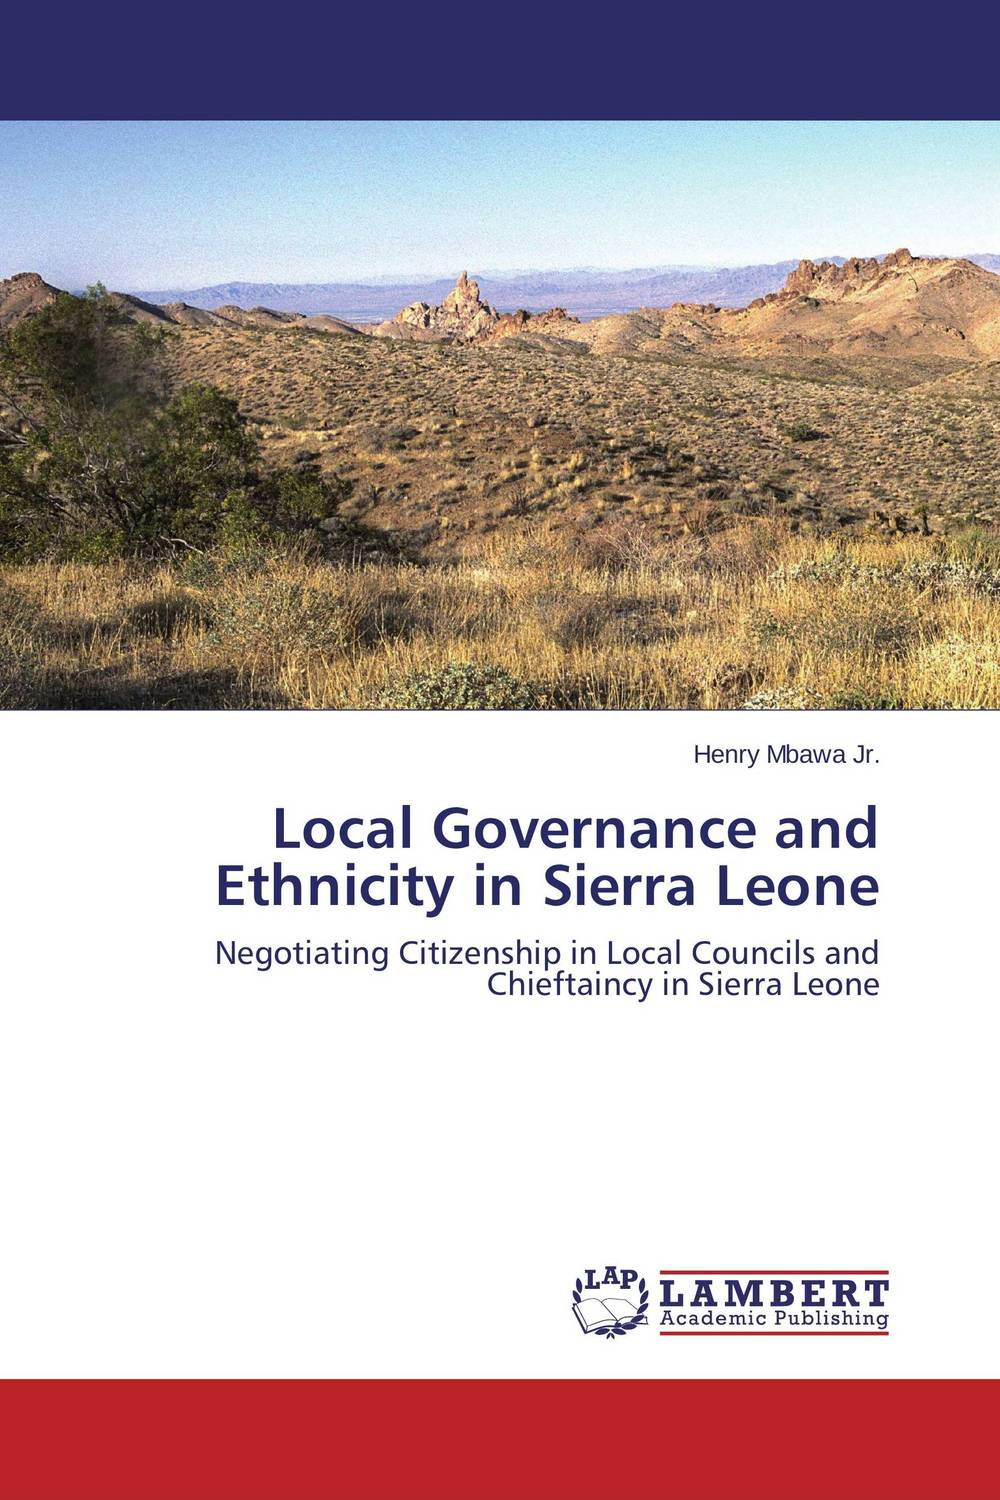 Local Governance and Ethnicity in Sierra Leone thomas winterbottom an accont of the native africans in the sierra leone vol 2